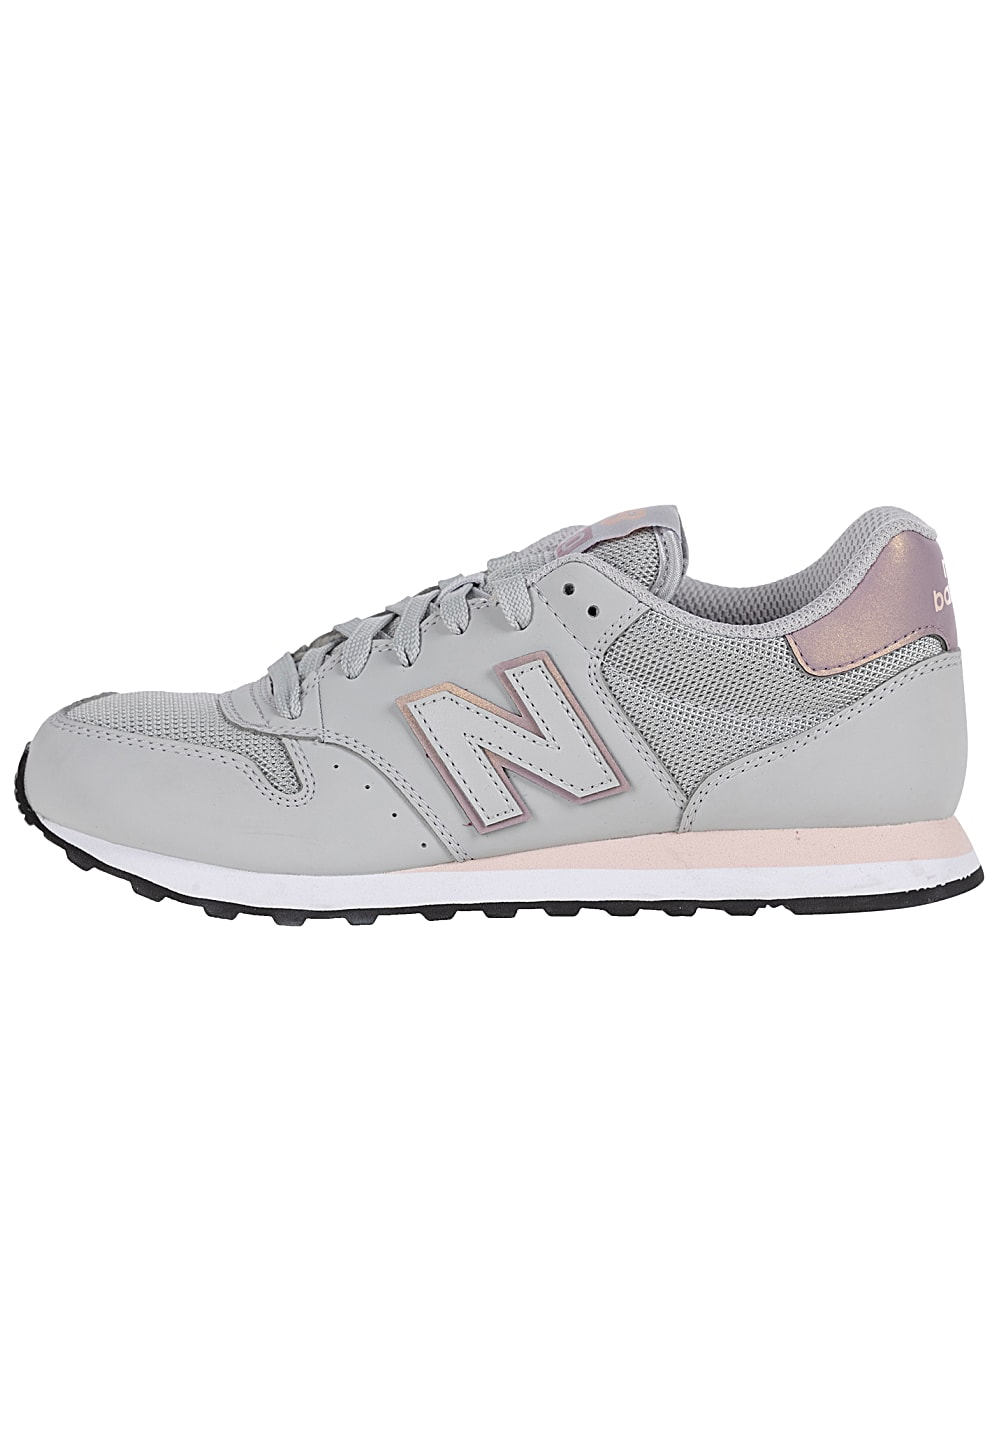 NEW BALANCE GW500 B - Sneaker für Damen - Grau - Planet Sports